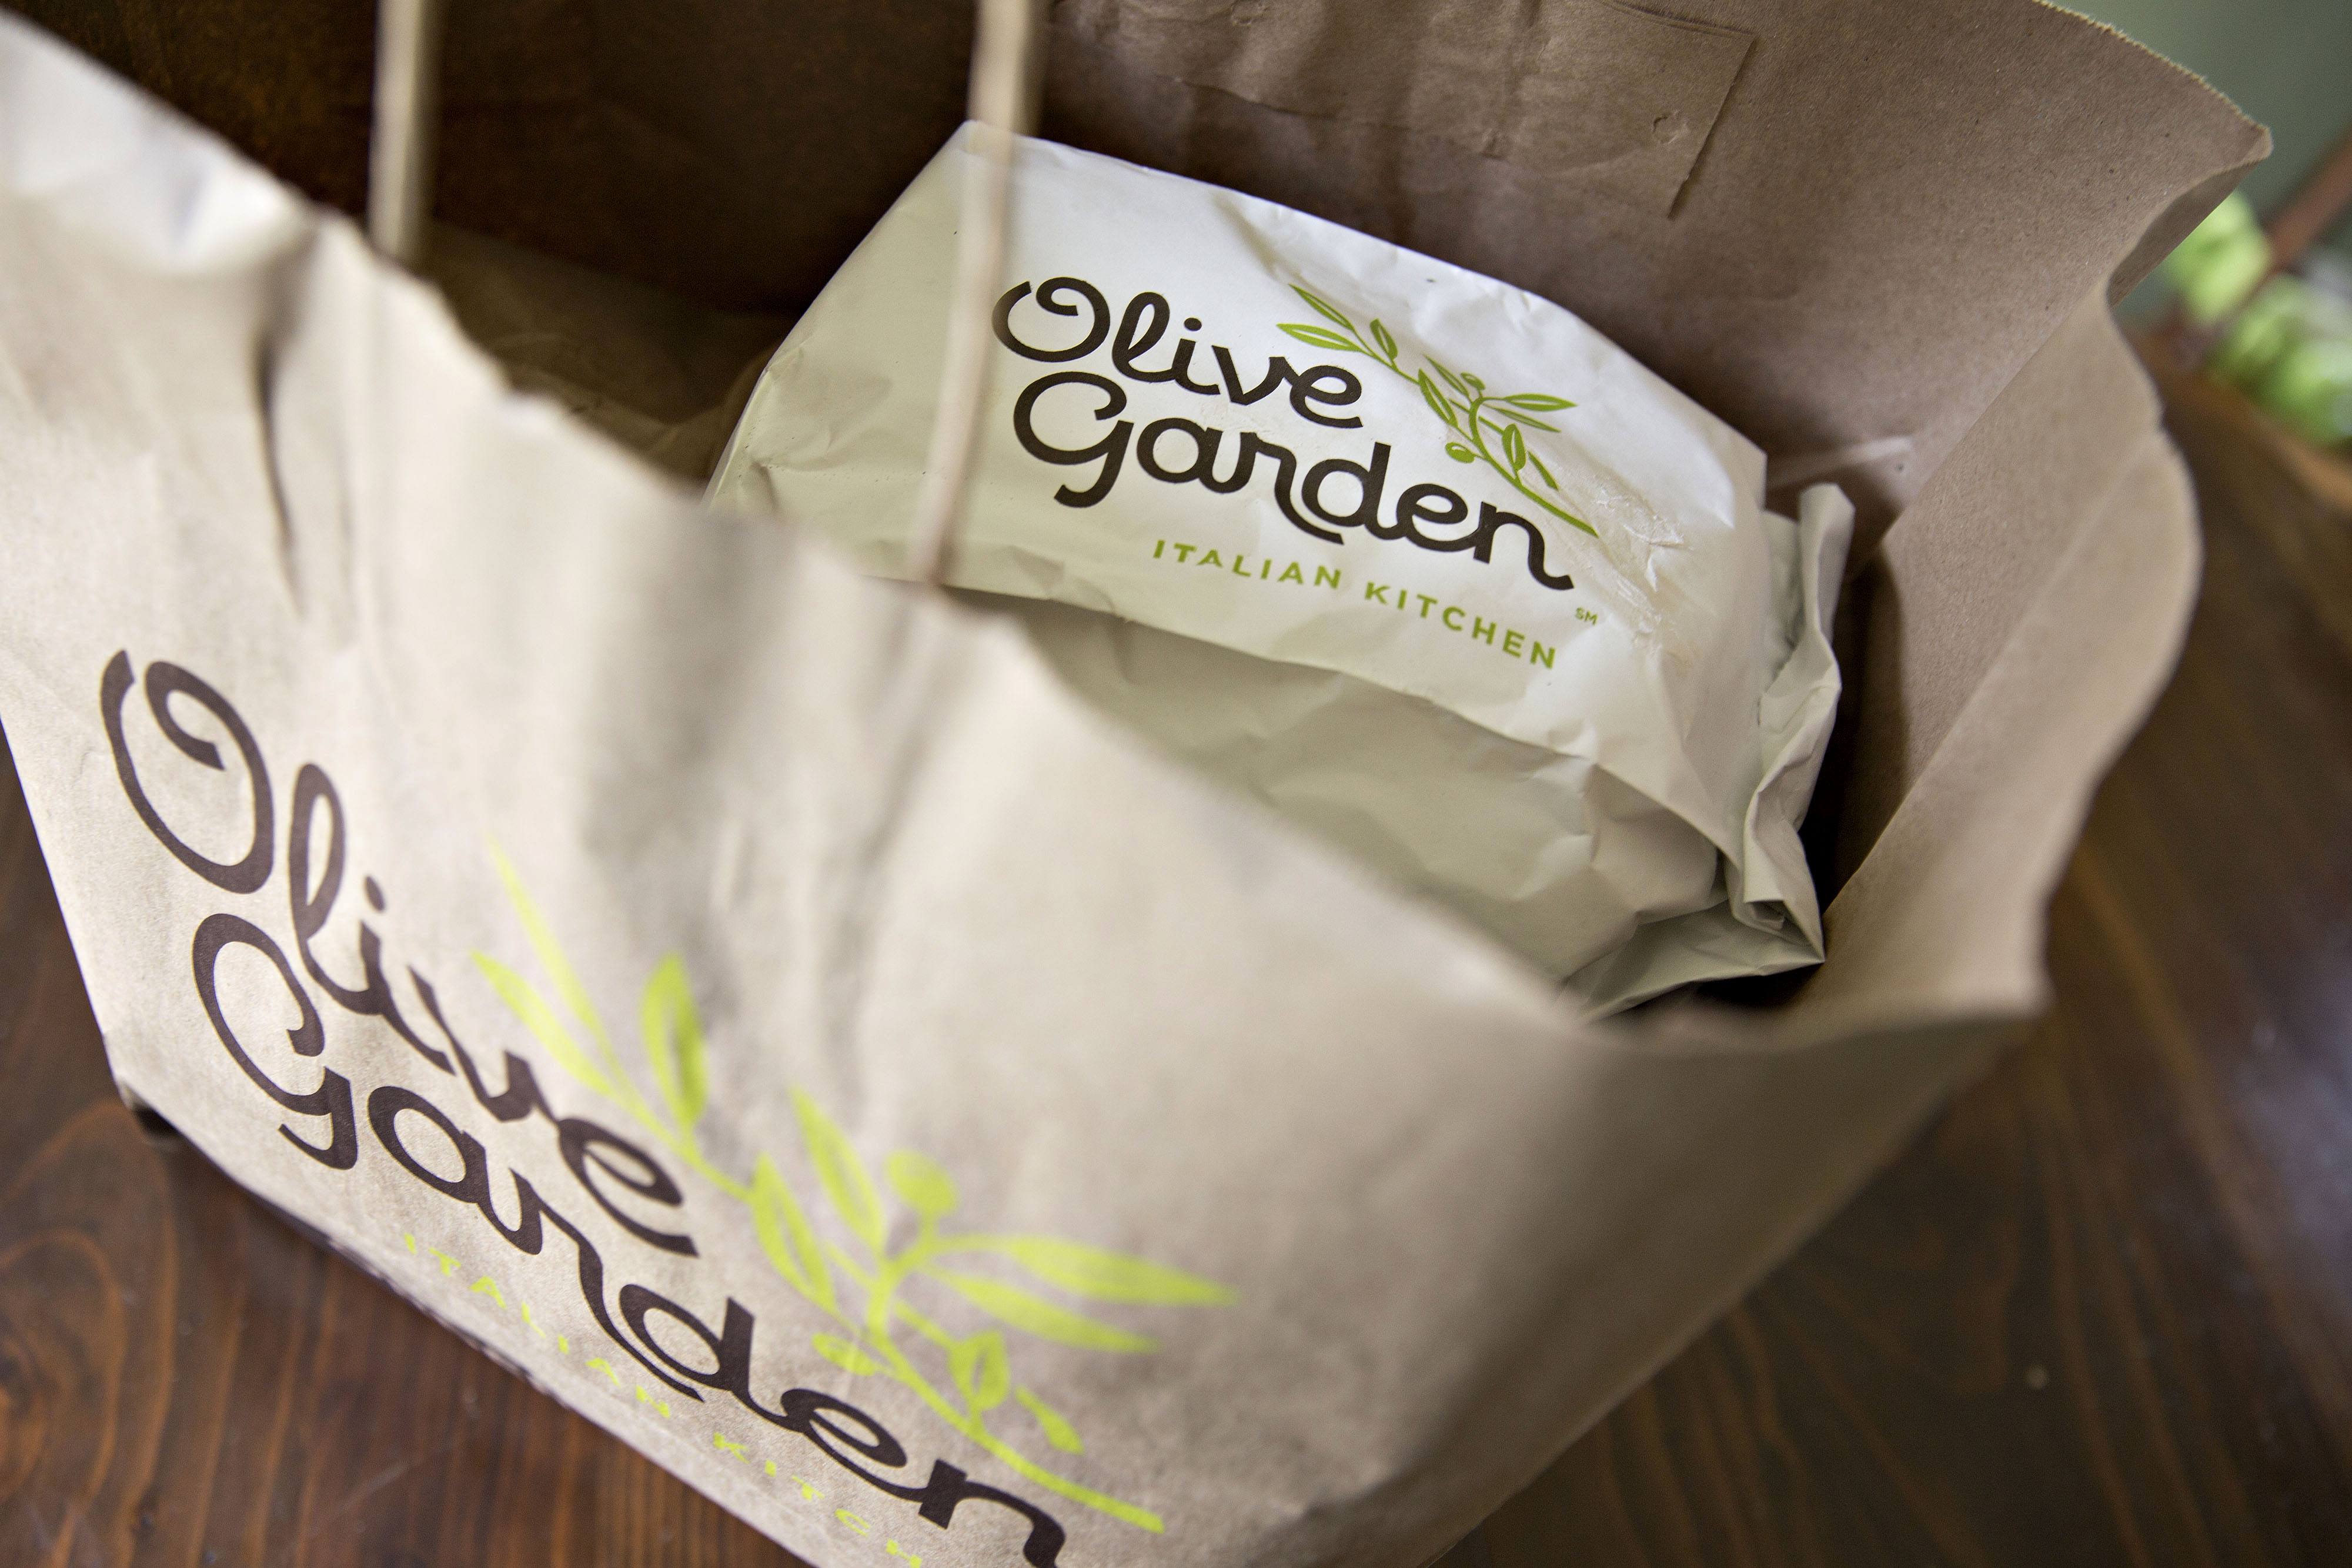 Olive Garden Take-Out Order Ahead Of Darden Restaurants Inc. Earning Figures